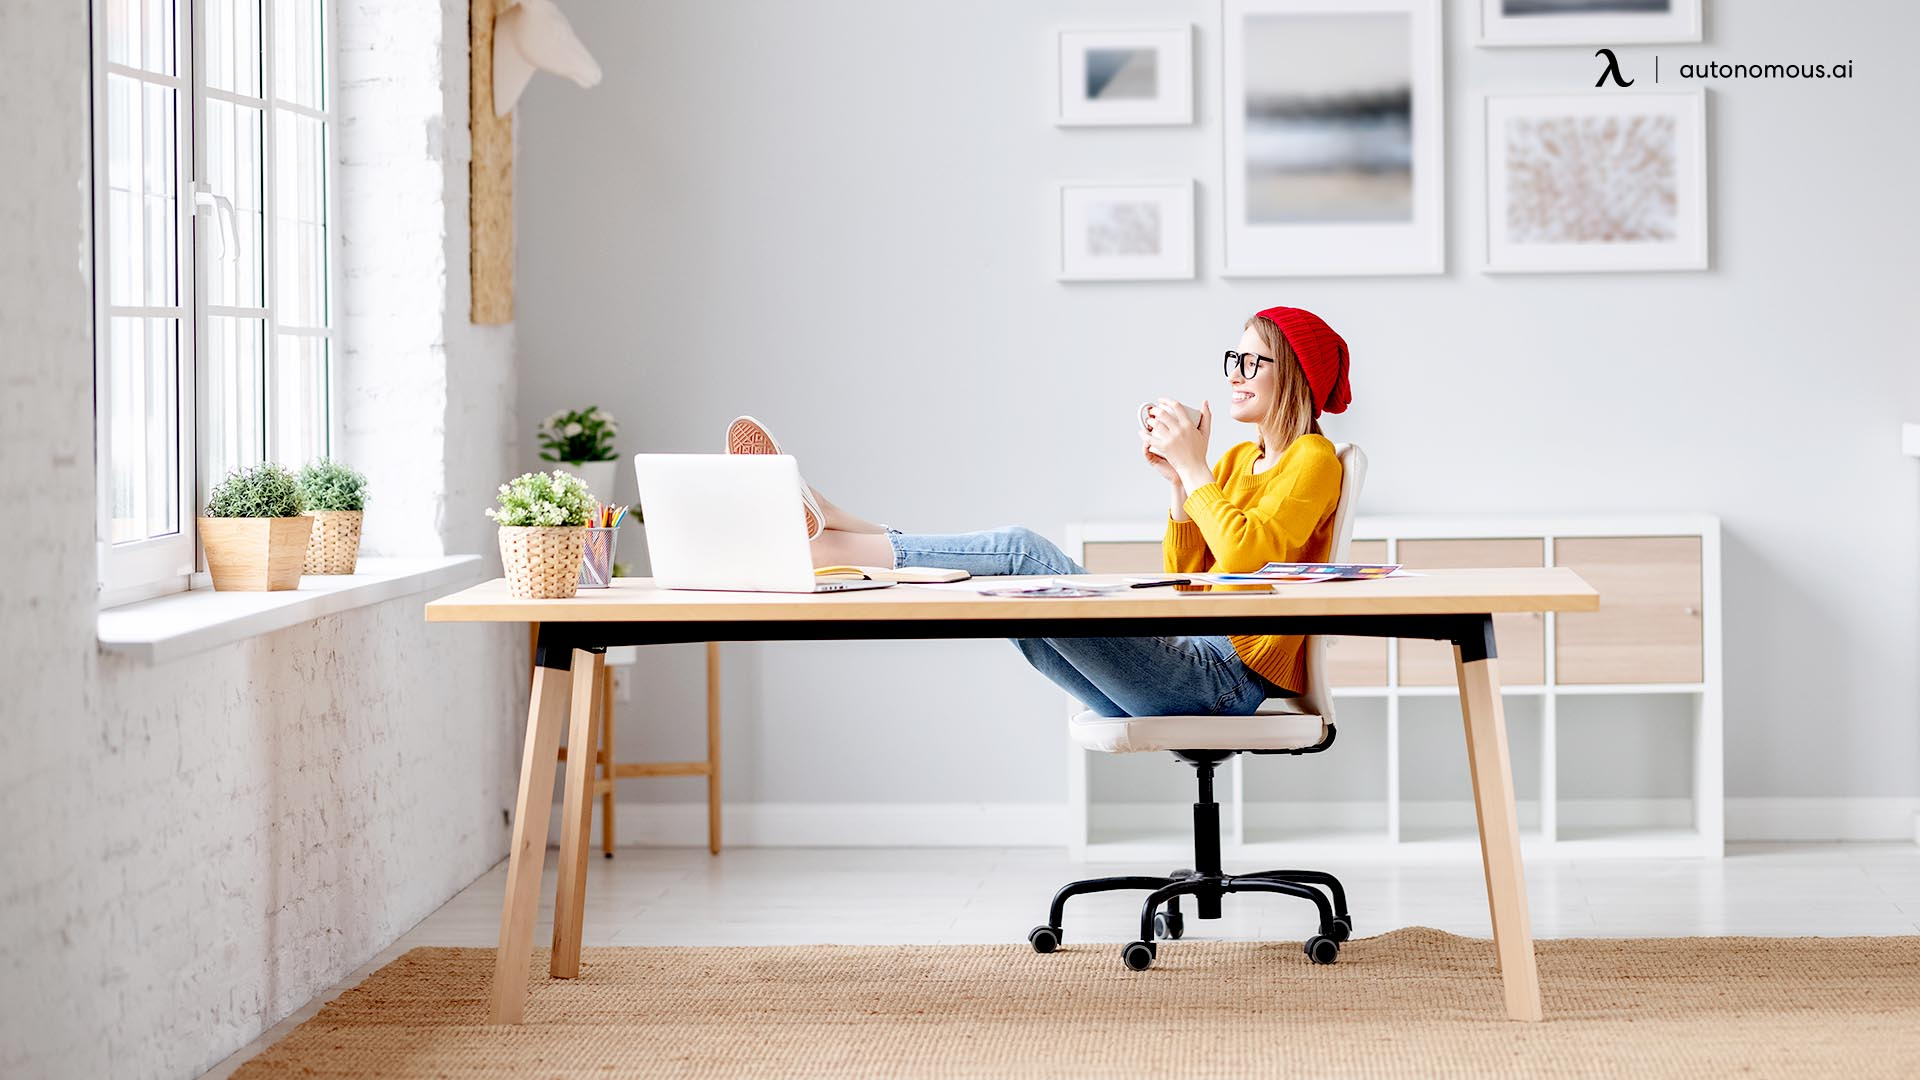 Why Does Your Team Want to Stay Working from Home?